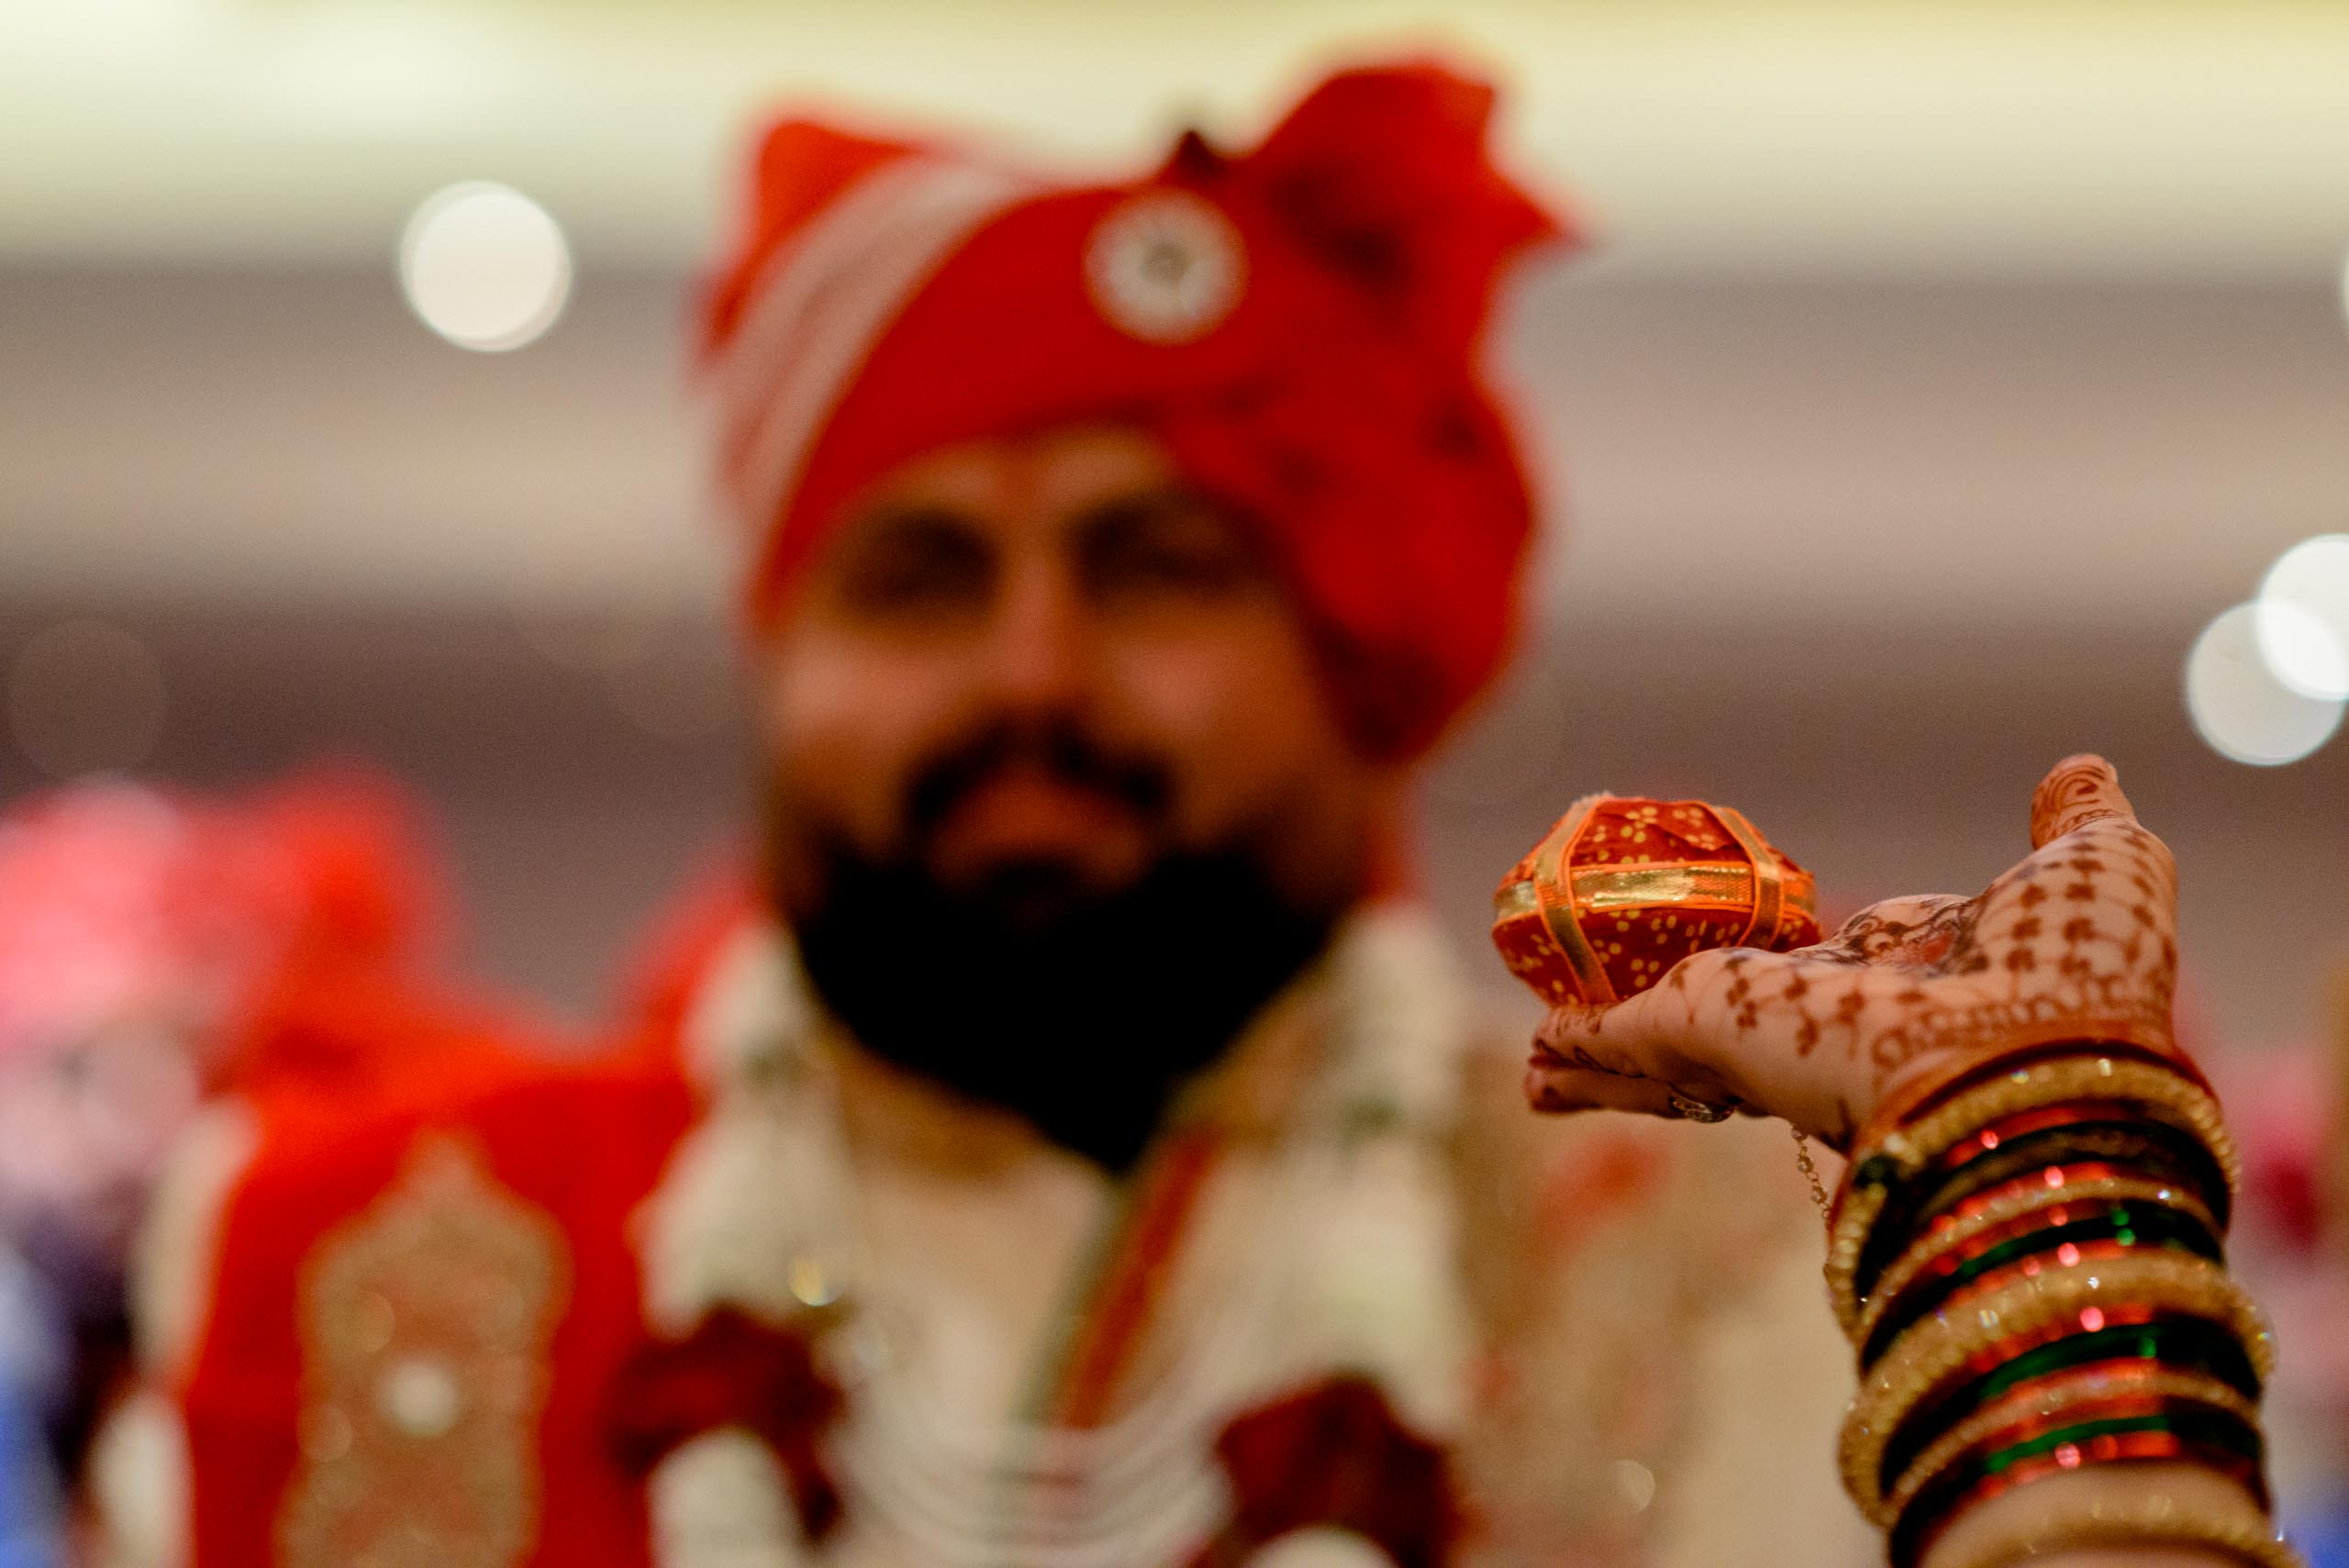 Amit&Amee-preview-edenmoments-40